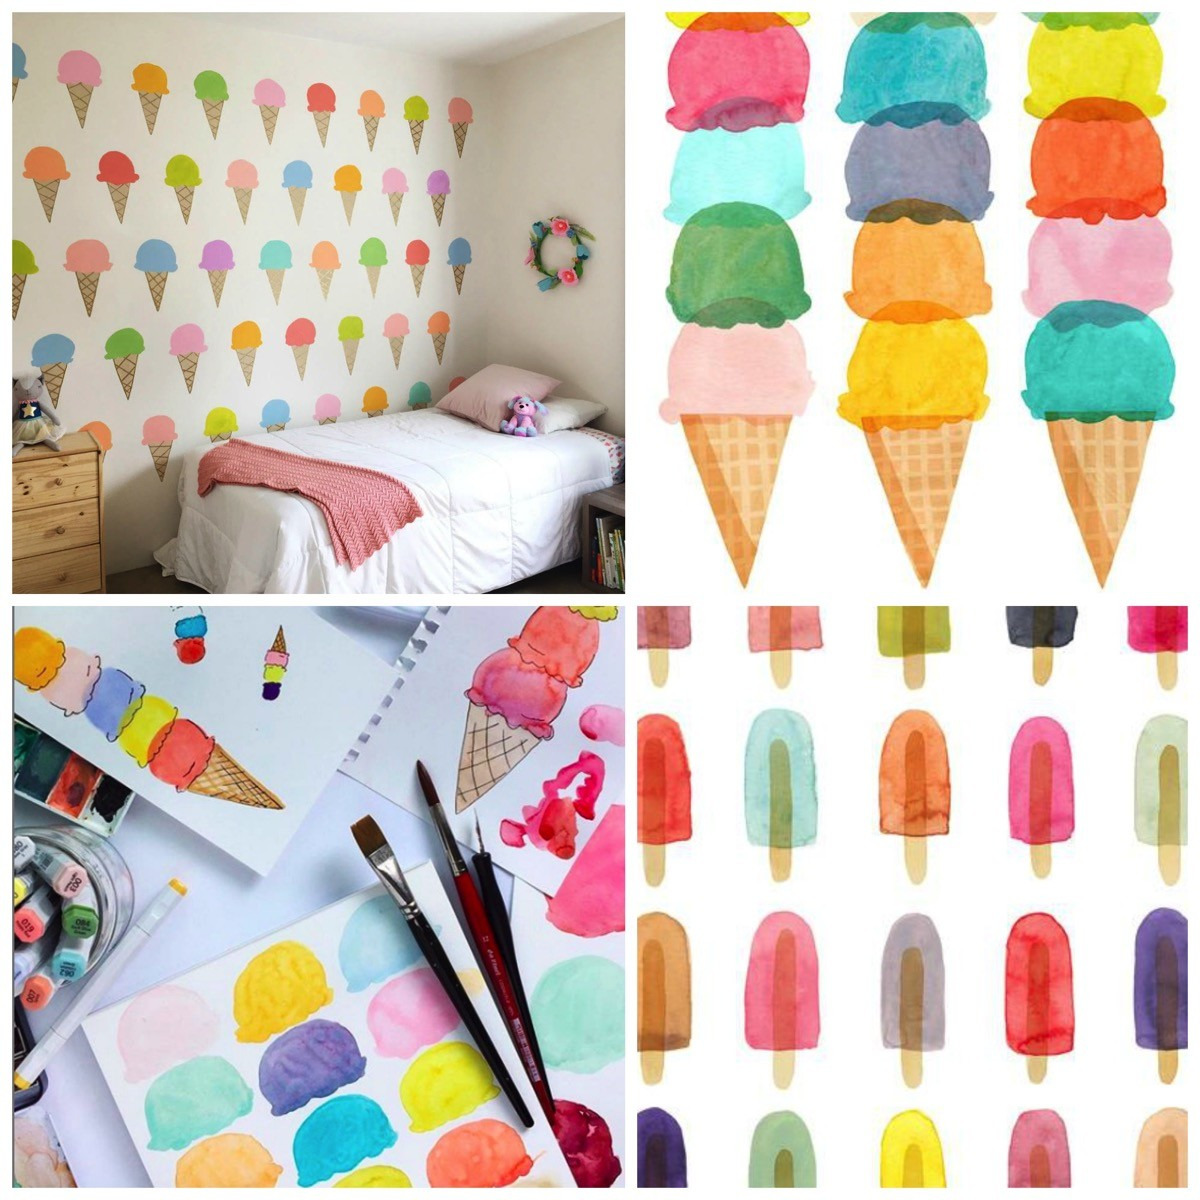 Natalie Lundeen colorful ice cream popsicle illistration